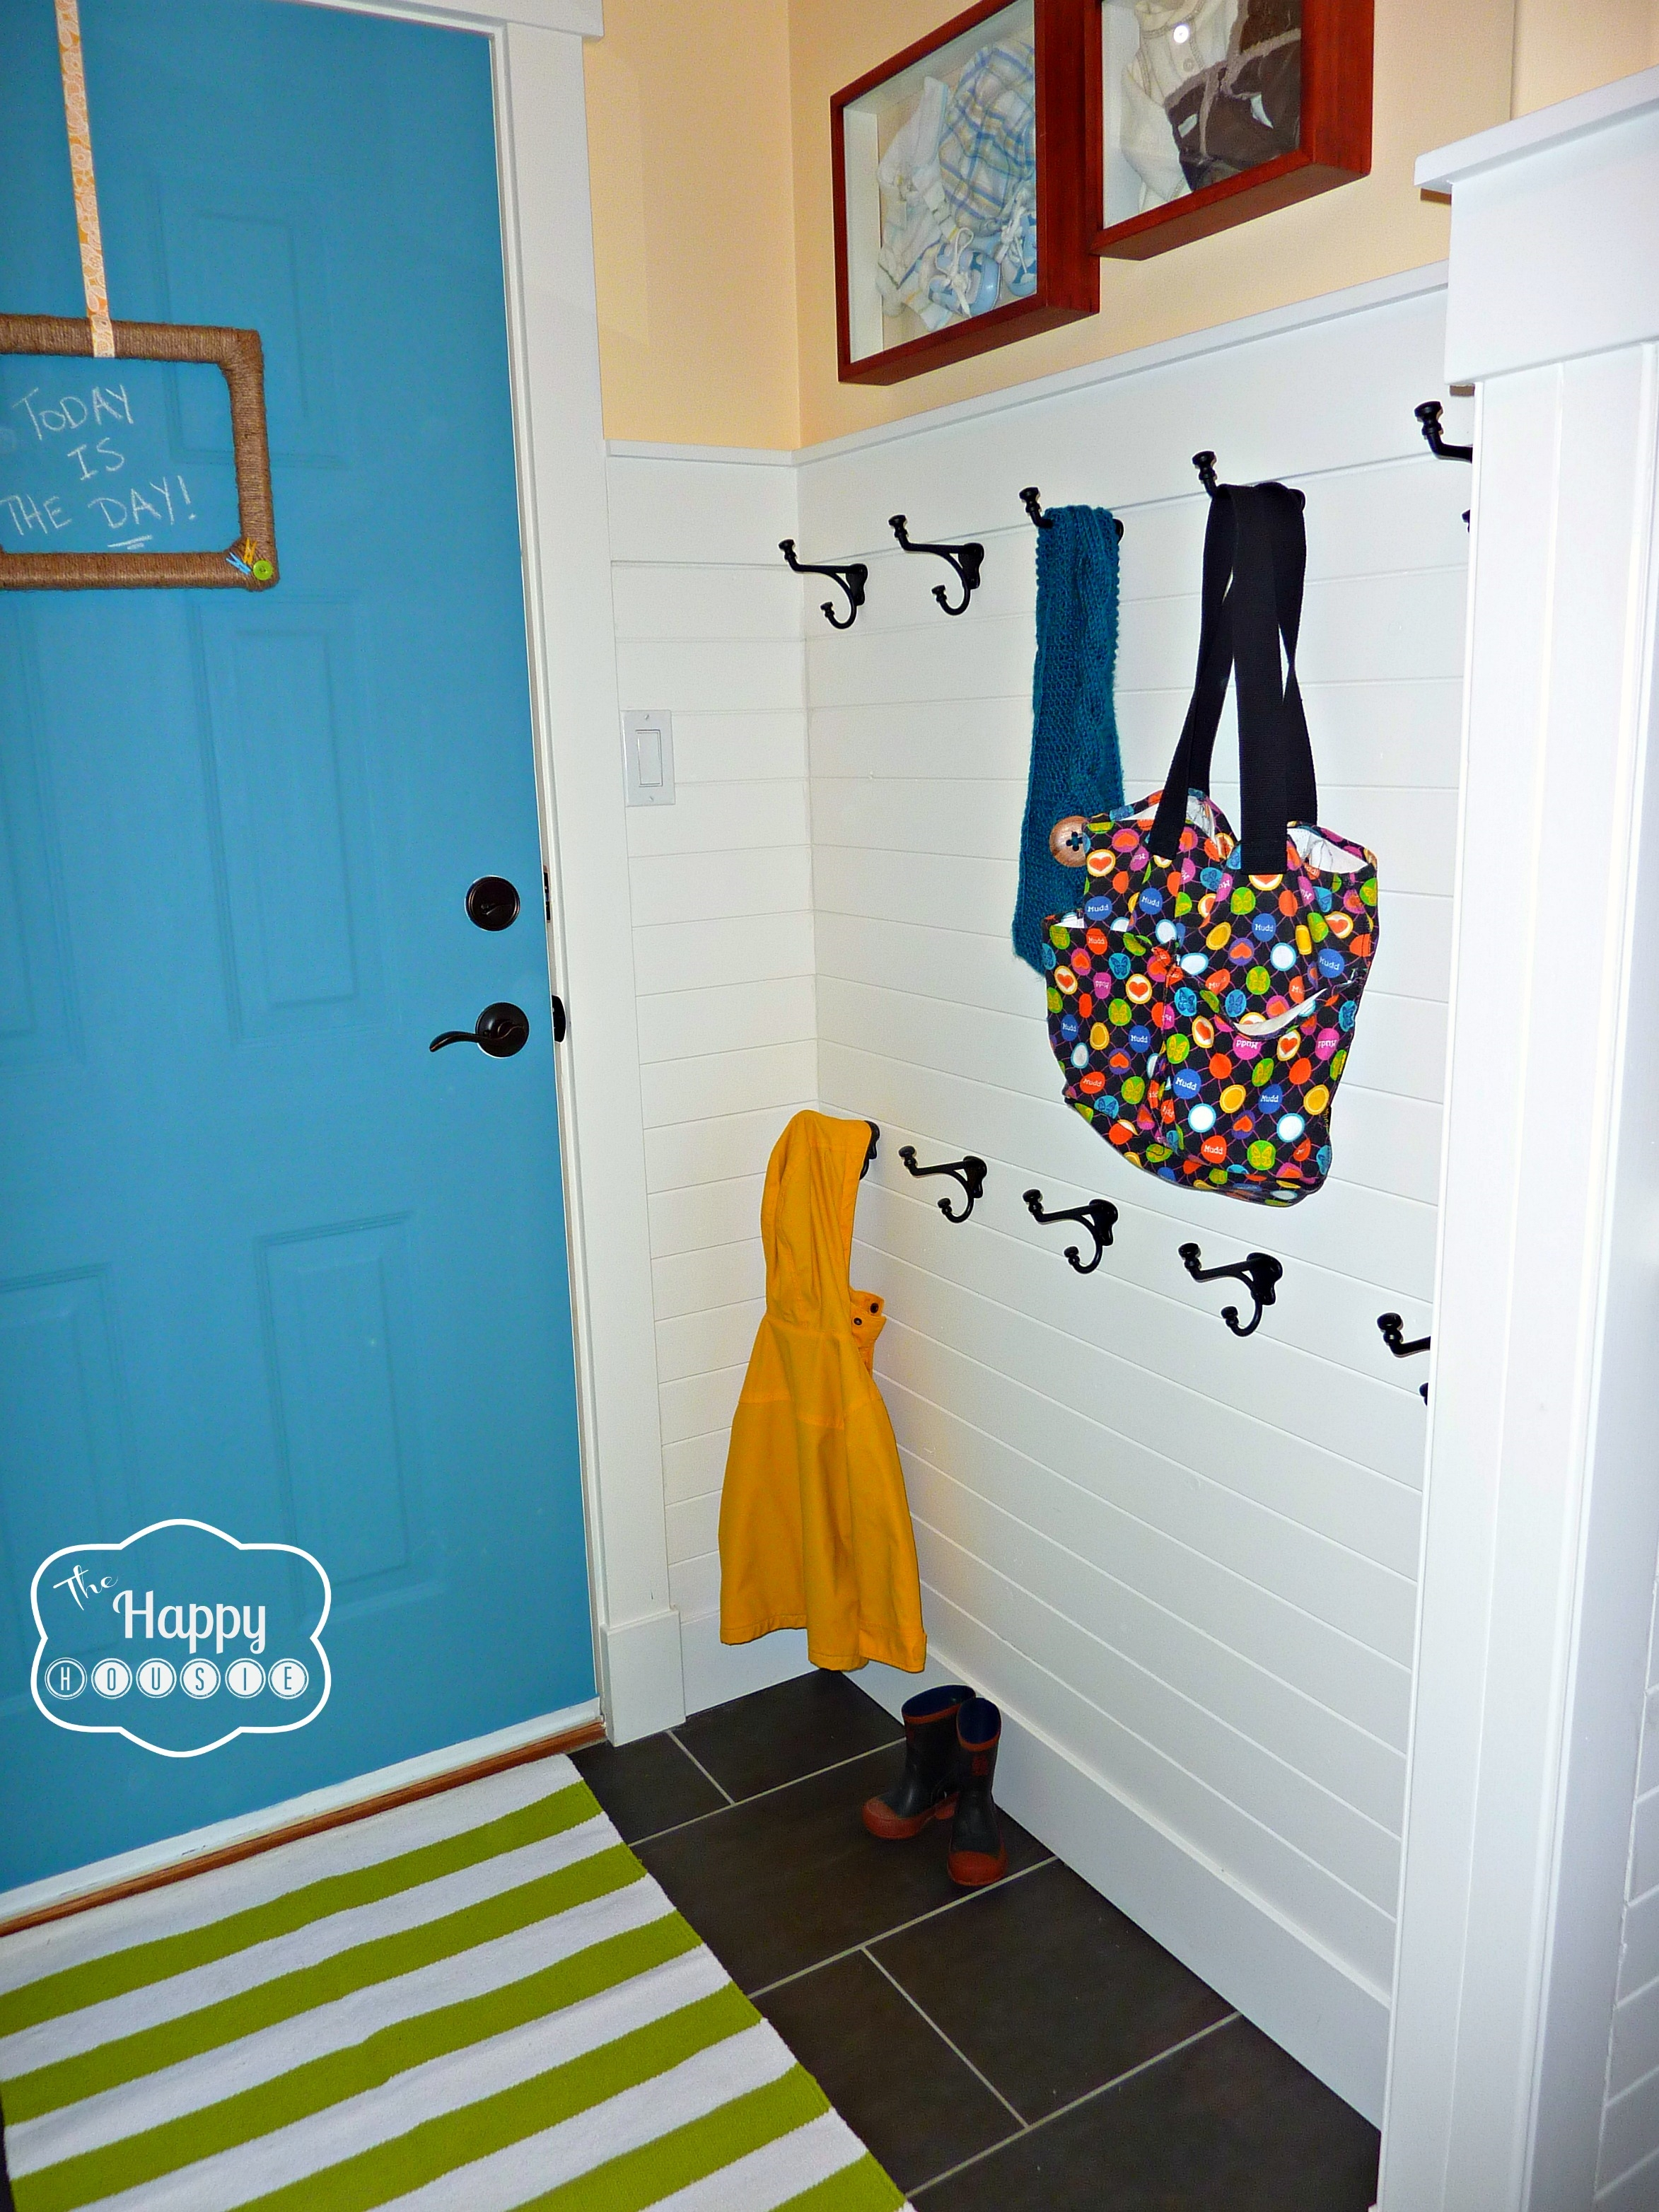 Diy Hang It Up!: A Hook Hanging How To | The Happy Housie With Regard To Most Current Wall Art Coat Hooks (View 9 of 20)